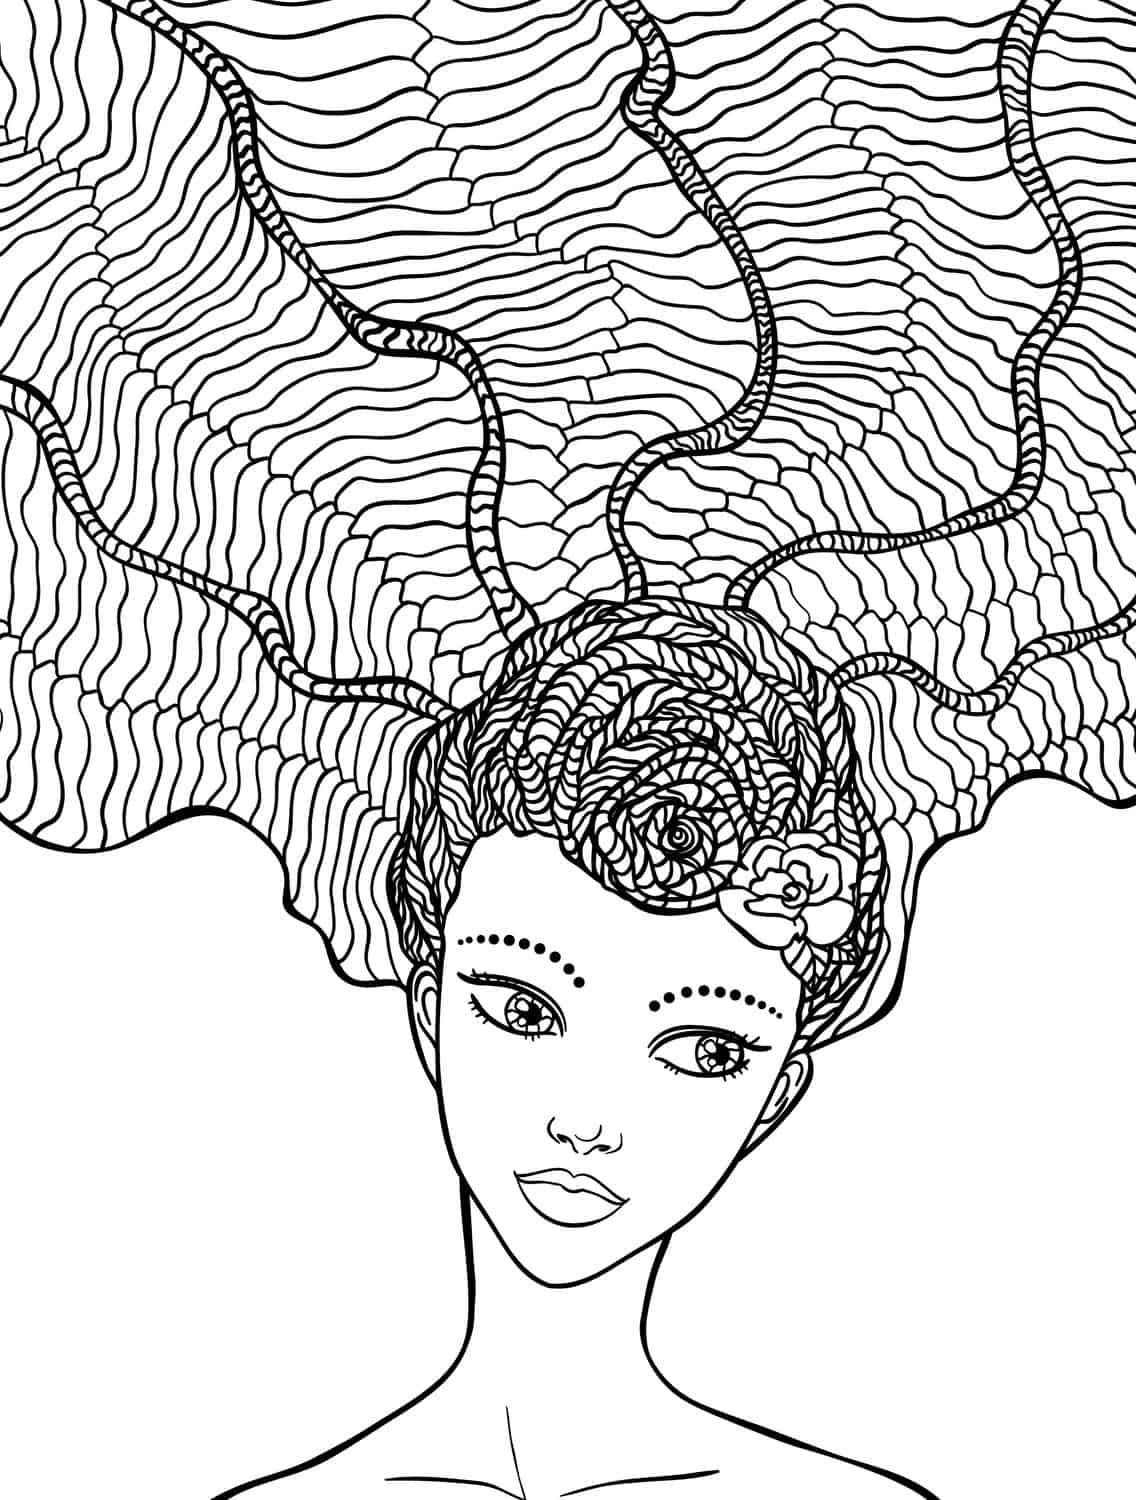 10 crazy hair adult coloring pages page 3 of 12 nerdy